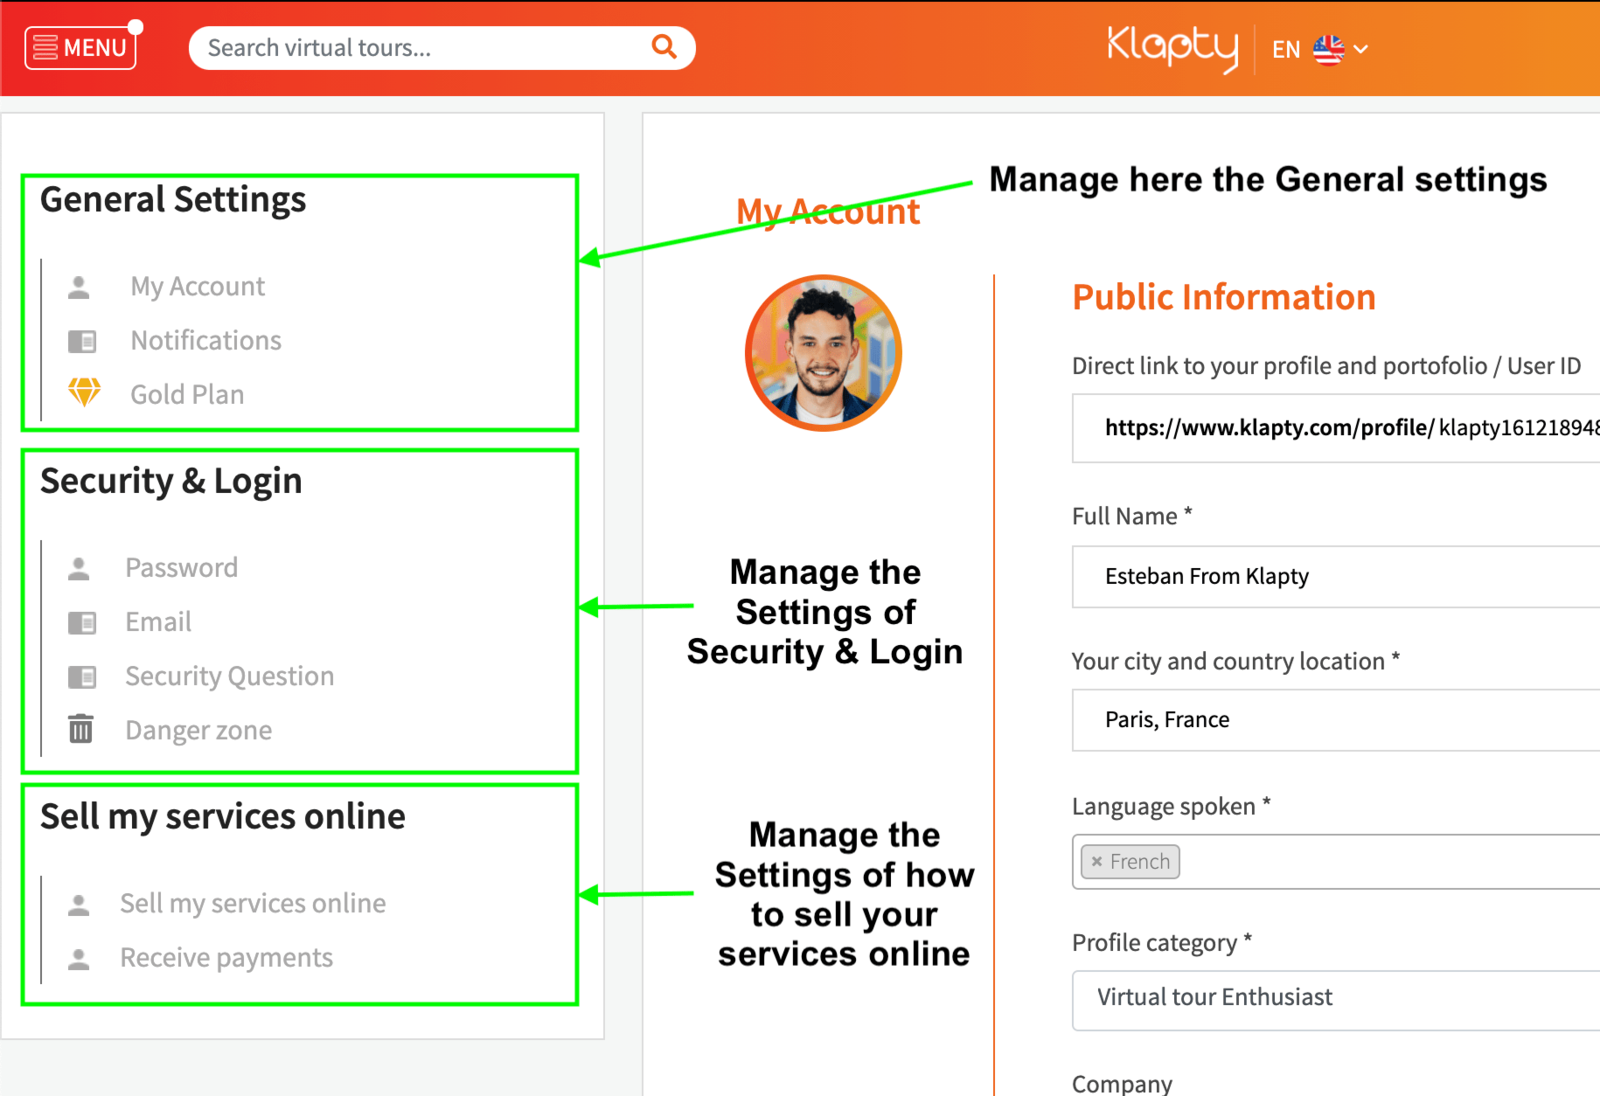 Manage your Account Settings